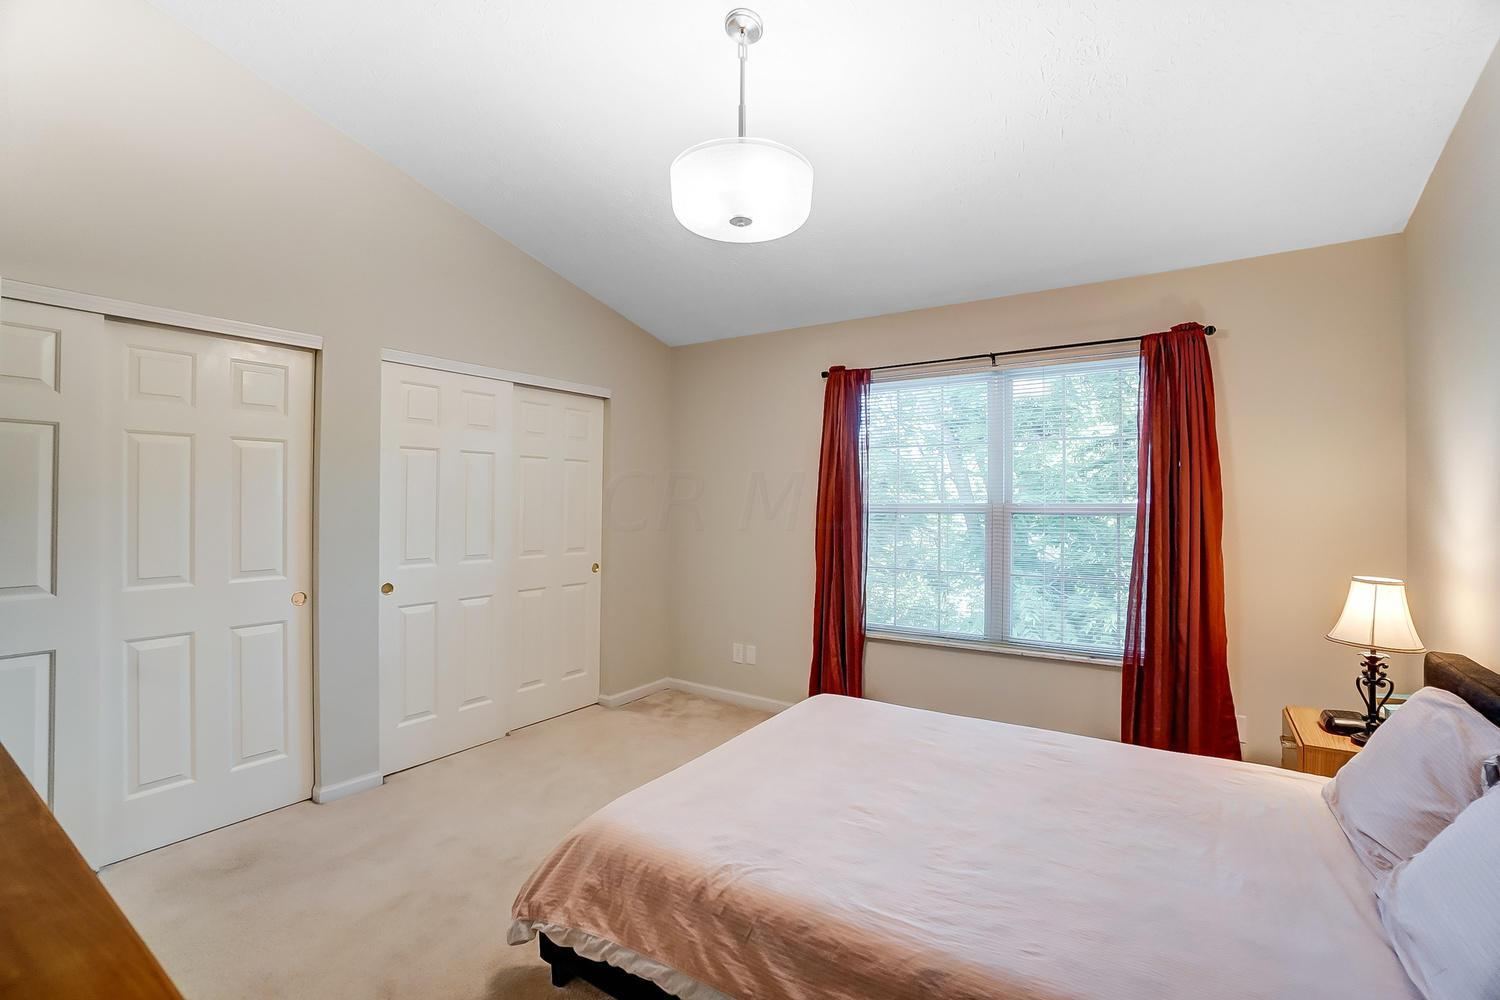 5419 Victoria Park Court, Columbus, Ohio 43235, 2 Bedrooms Bedrooms, ,4 BathroomsBathrooms,Residential,For Sale,Victoria Park,220020601